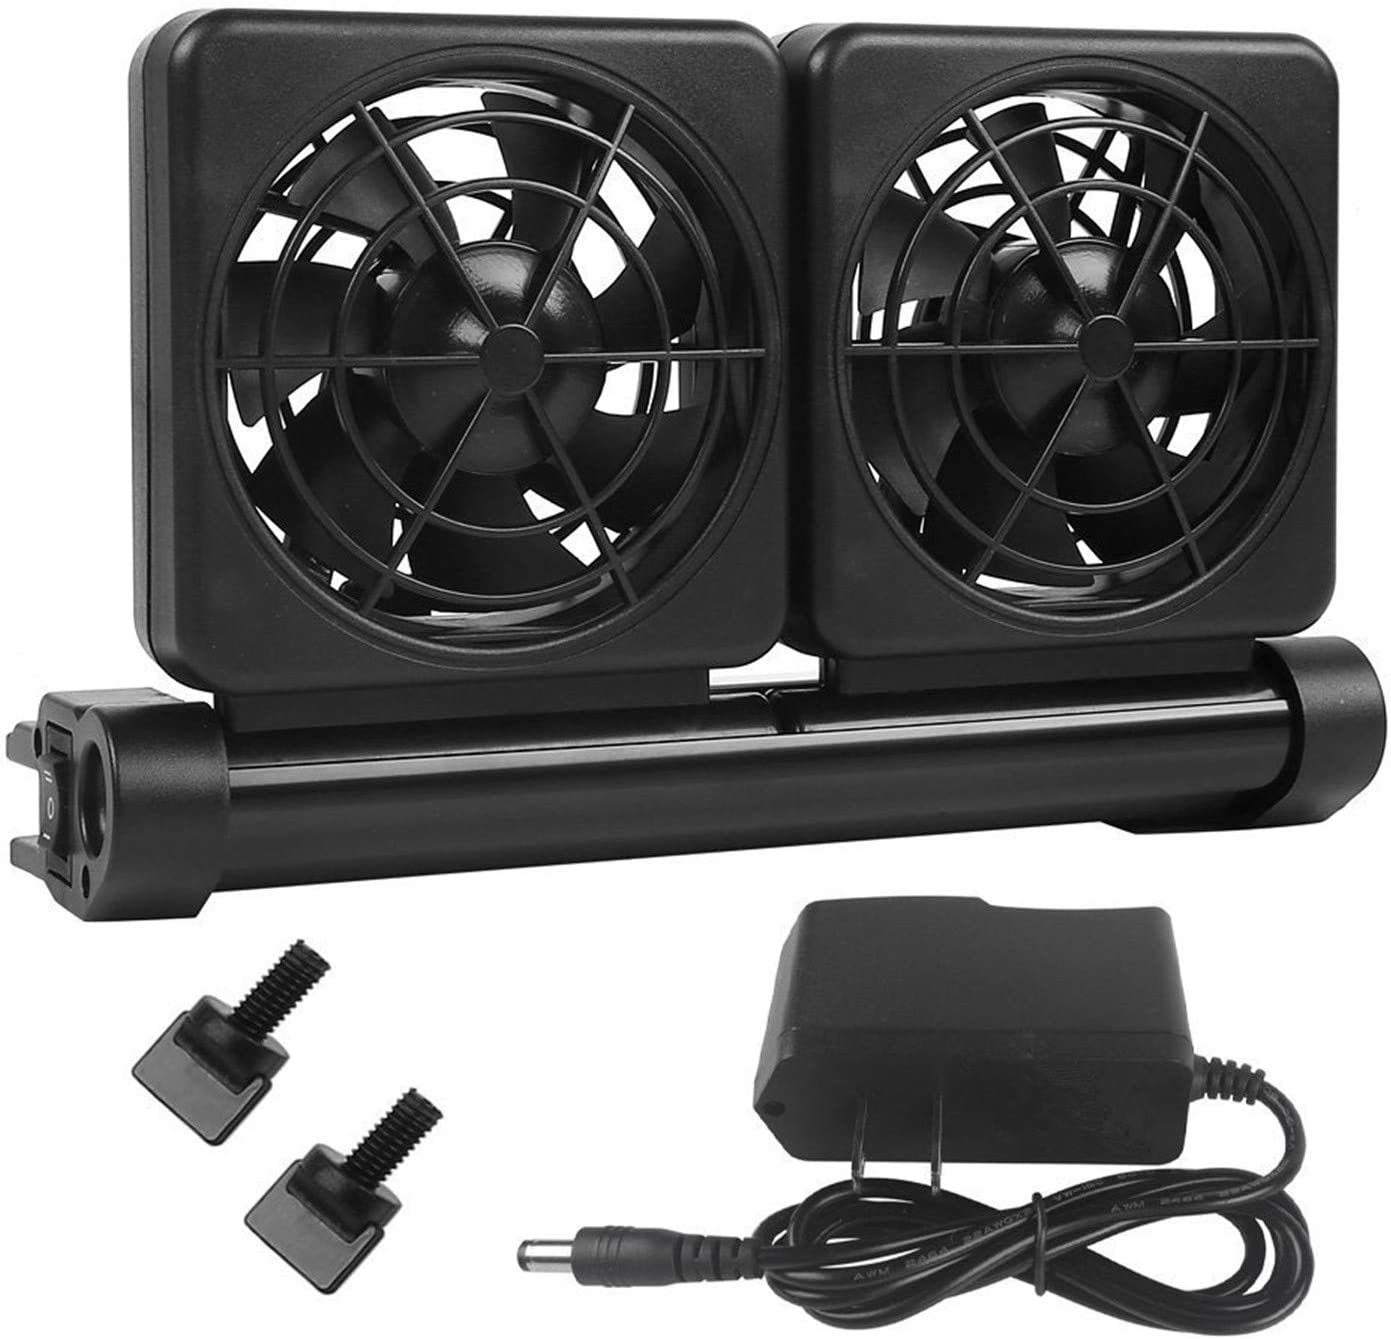 XMHF Aquarium Chiller, Fish Tank Cooling Fan System for Salt Fresh Water